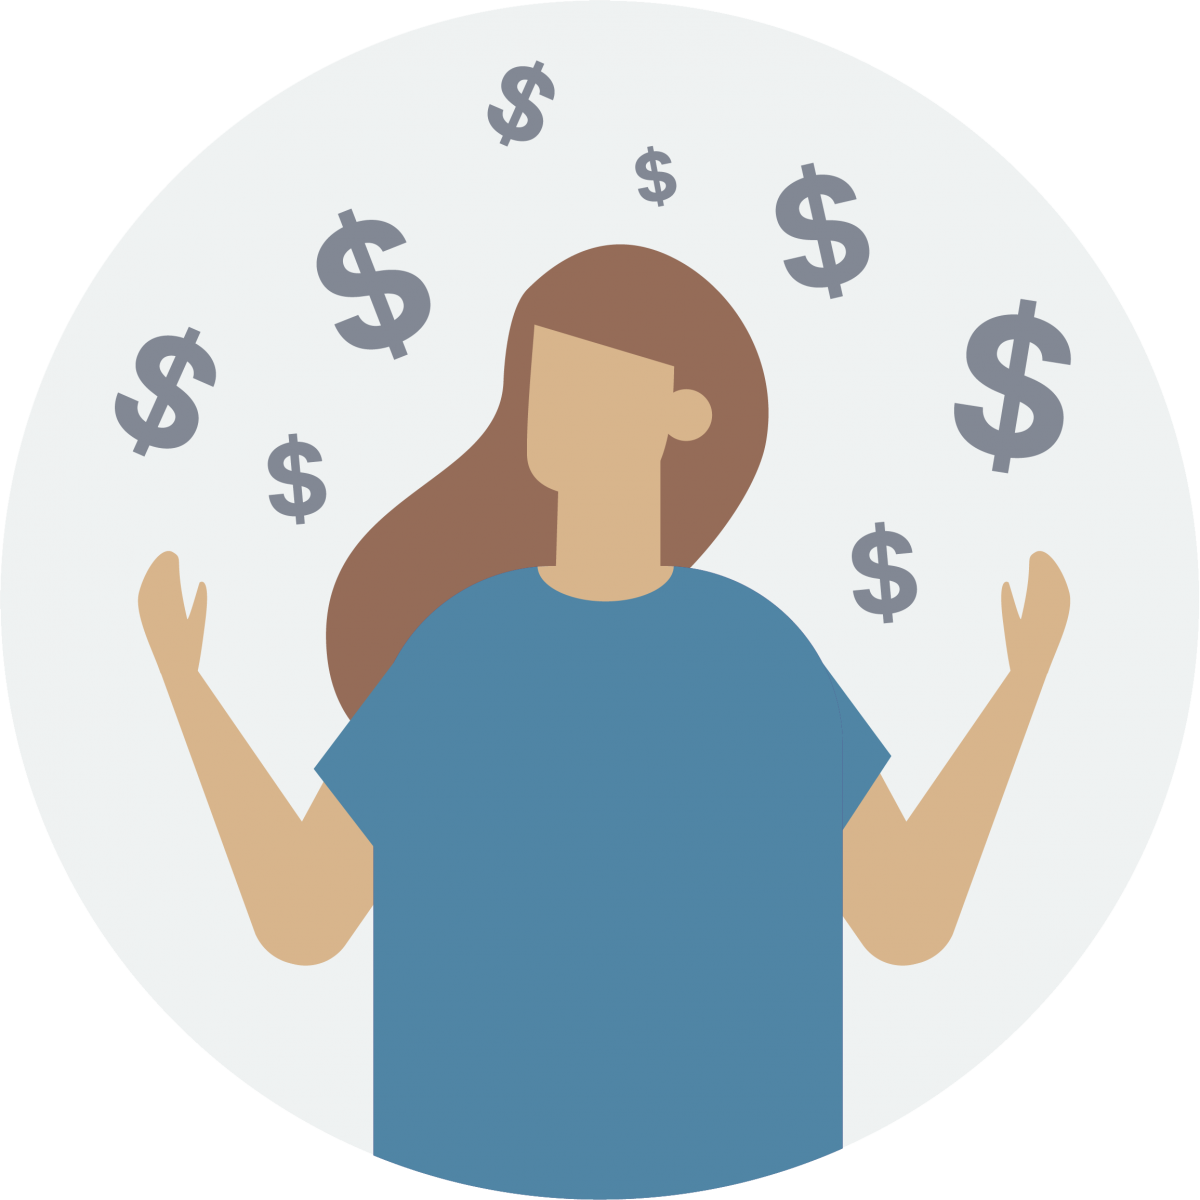 person holding hands up with dollar signs around them